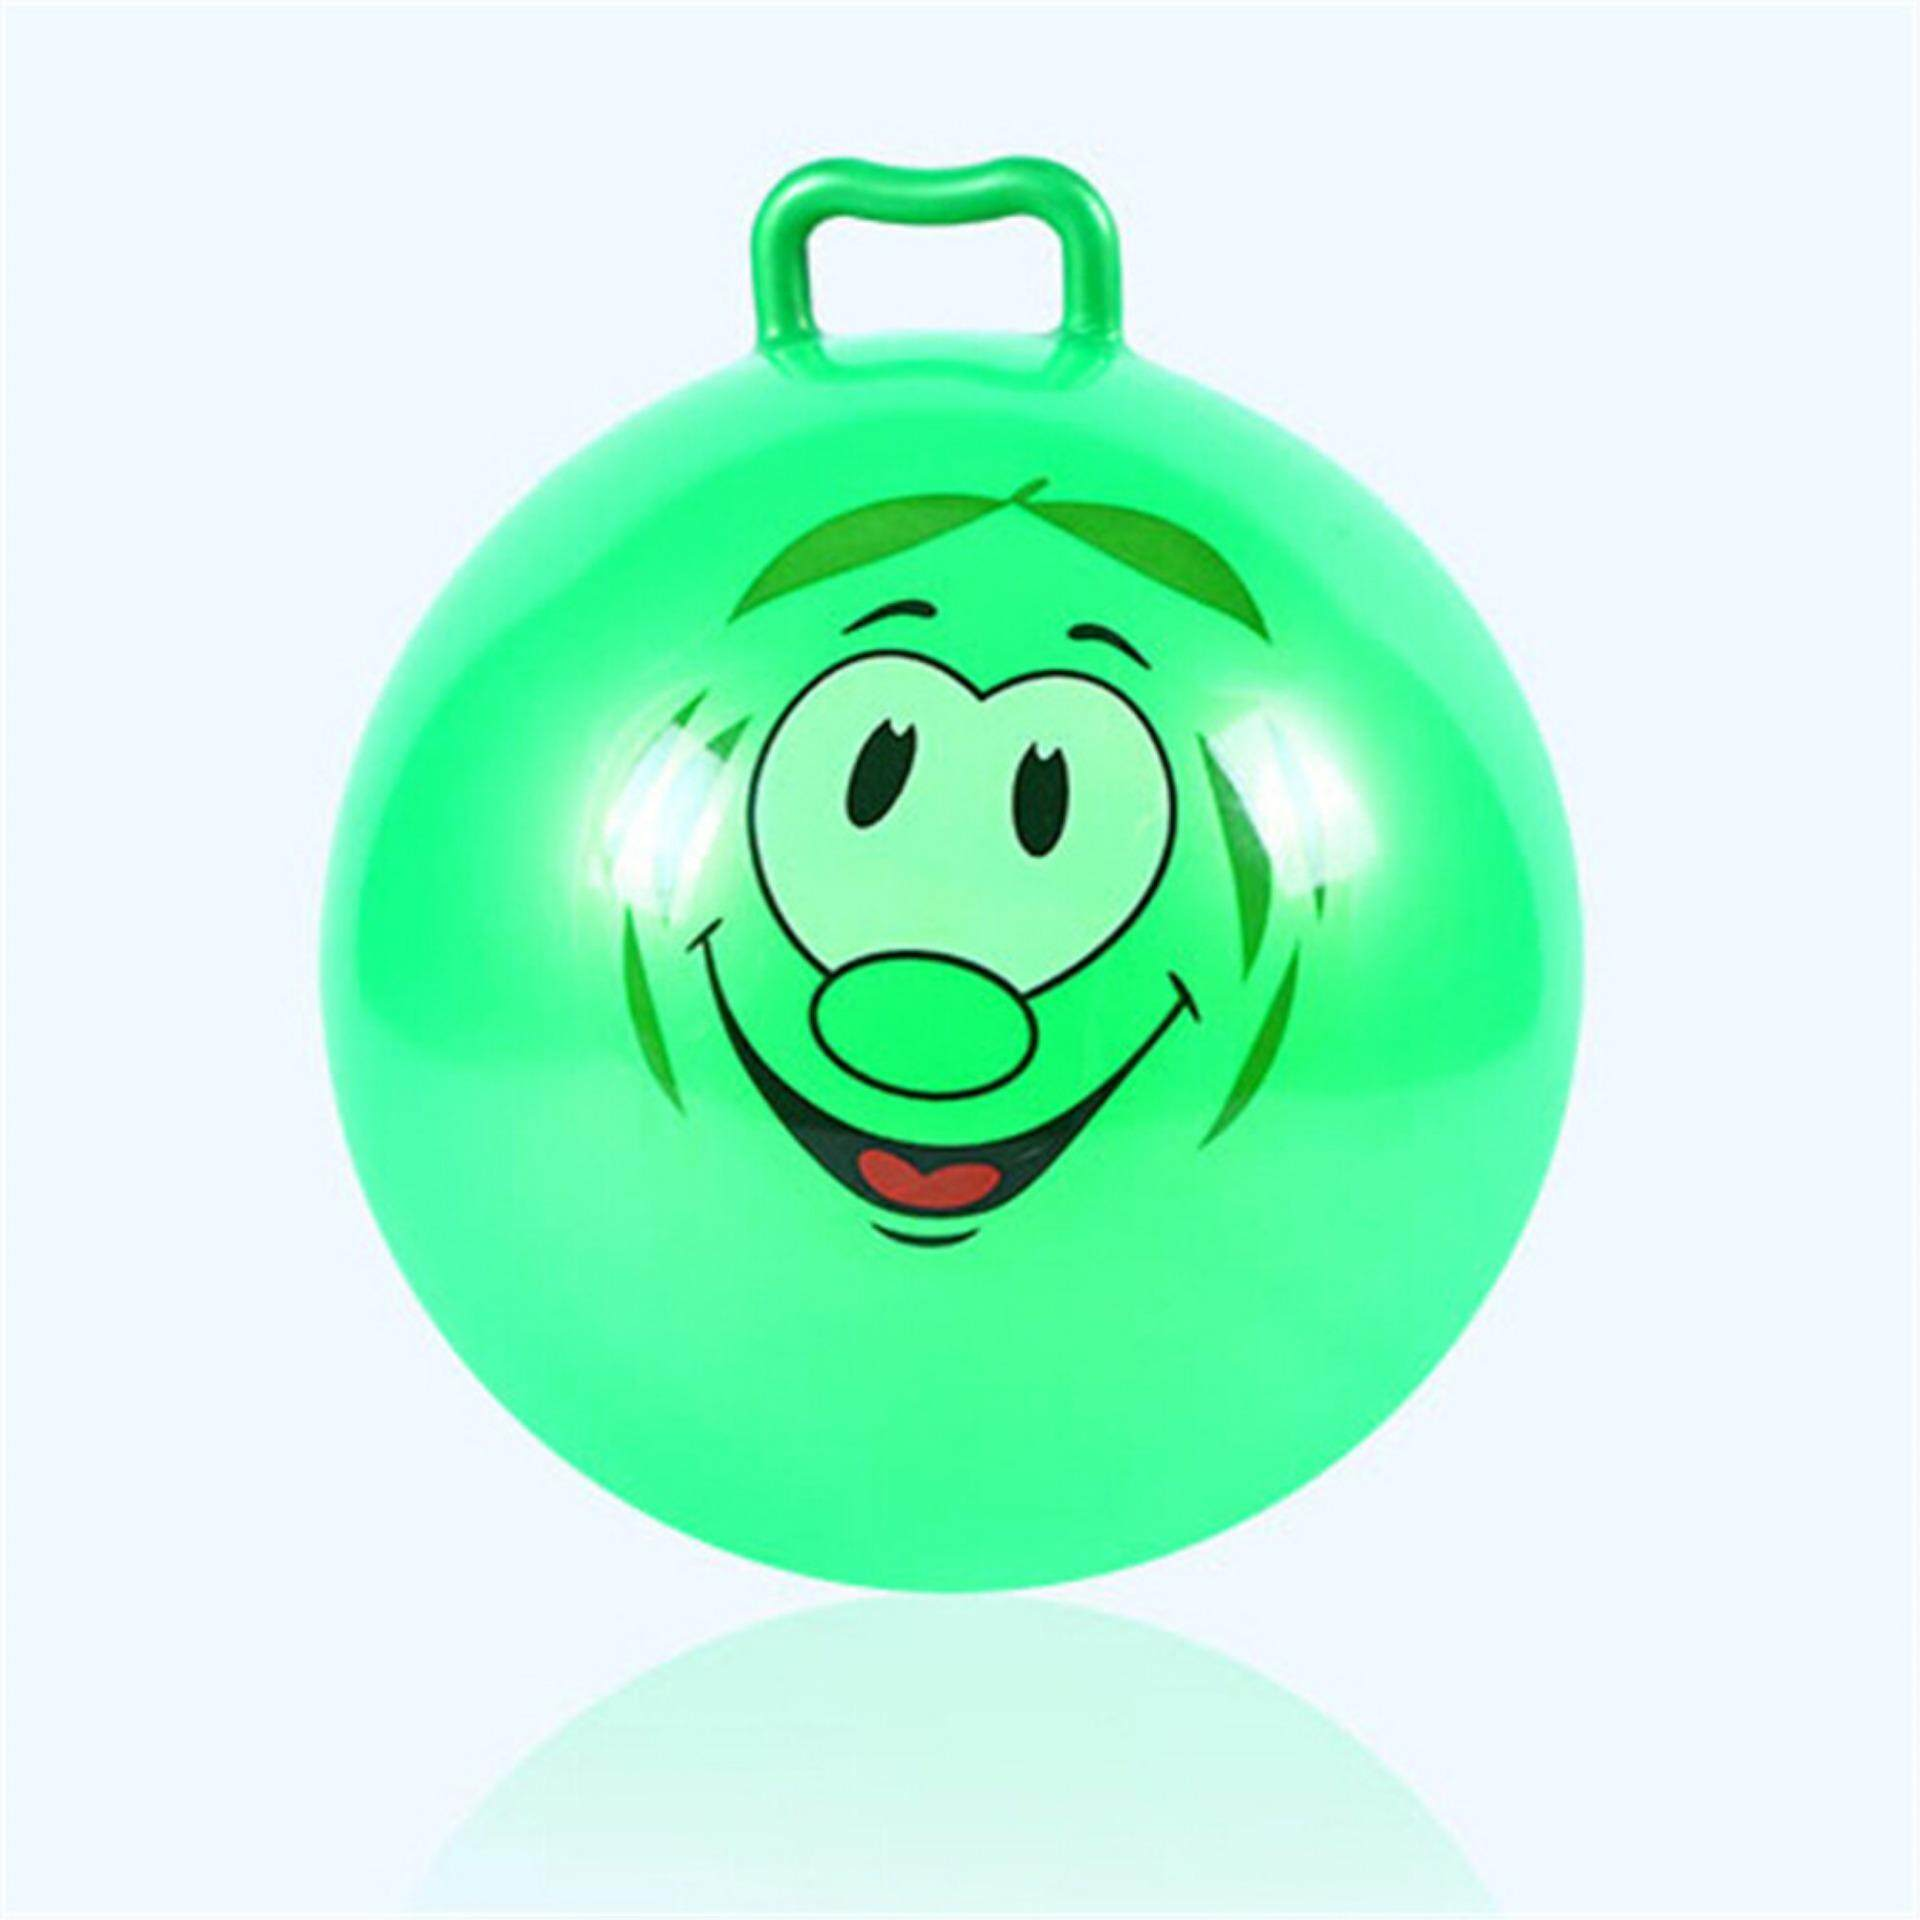 Inflatable Hopping Jumping Ball Bouncer Hopper Handle Kids Outdoor Fun Beach Toy Random Colour By Gorgeous Road.